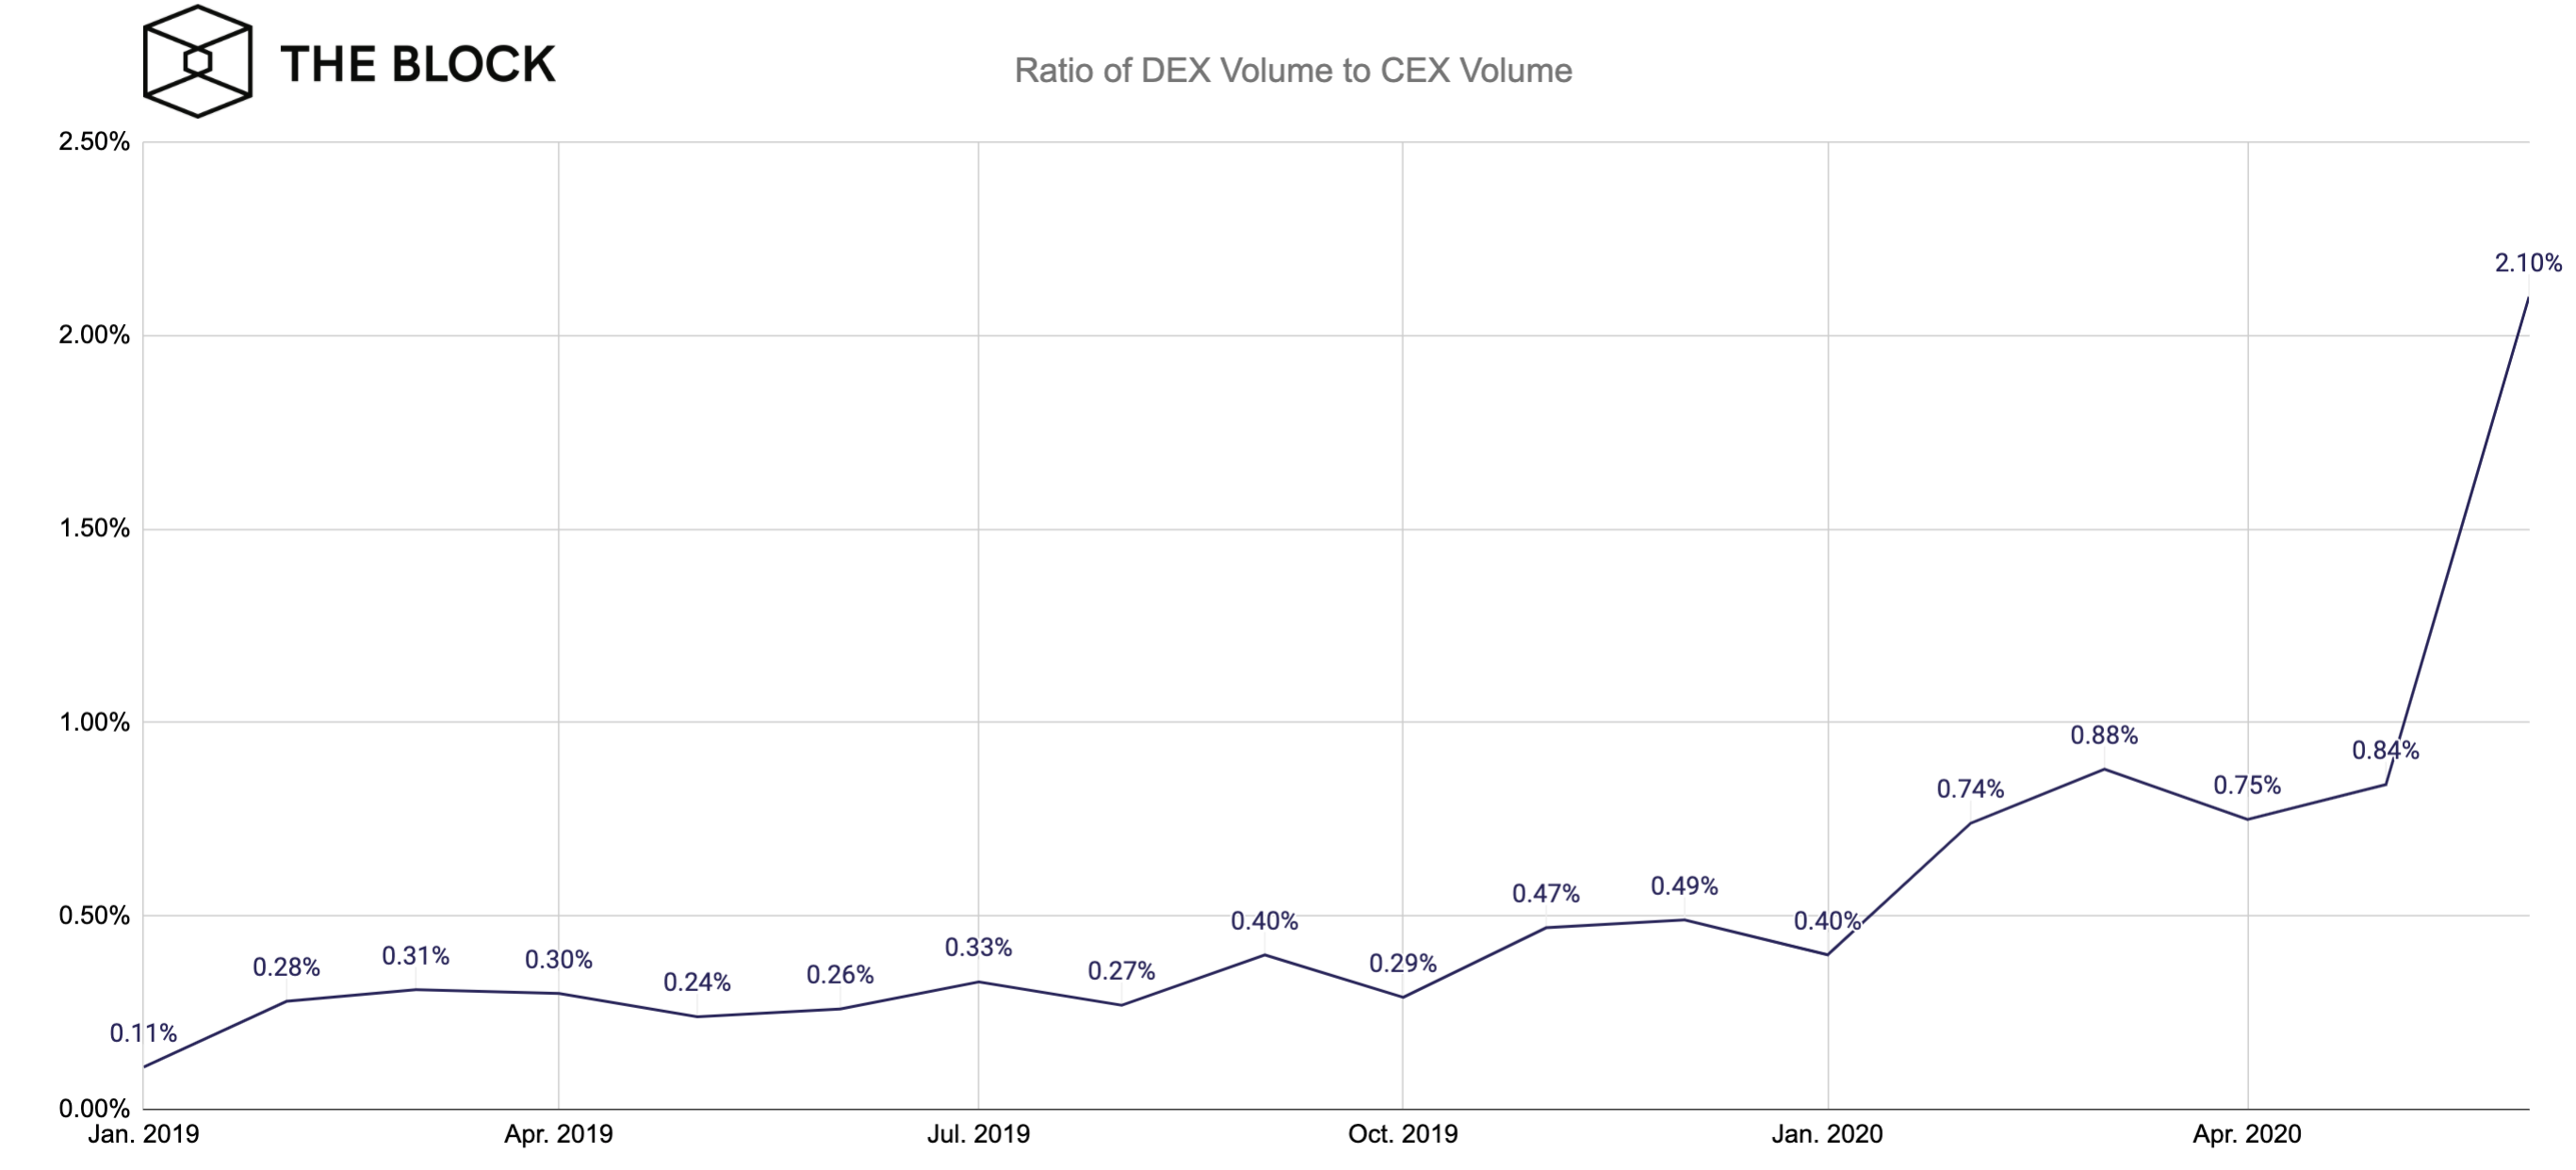 Ratio of DEX volume to CEX volume